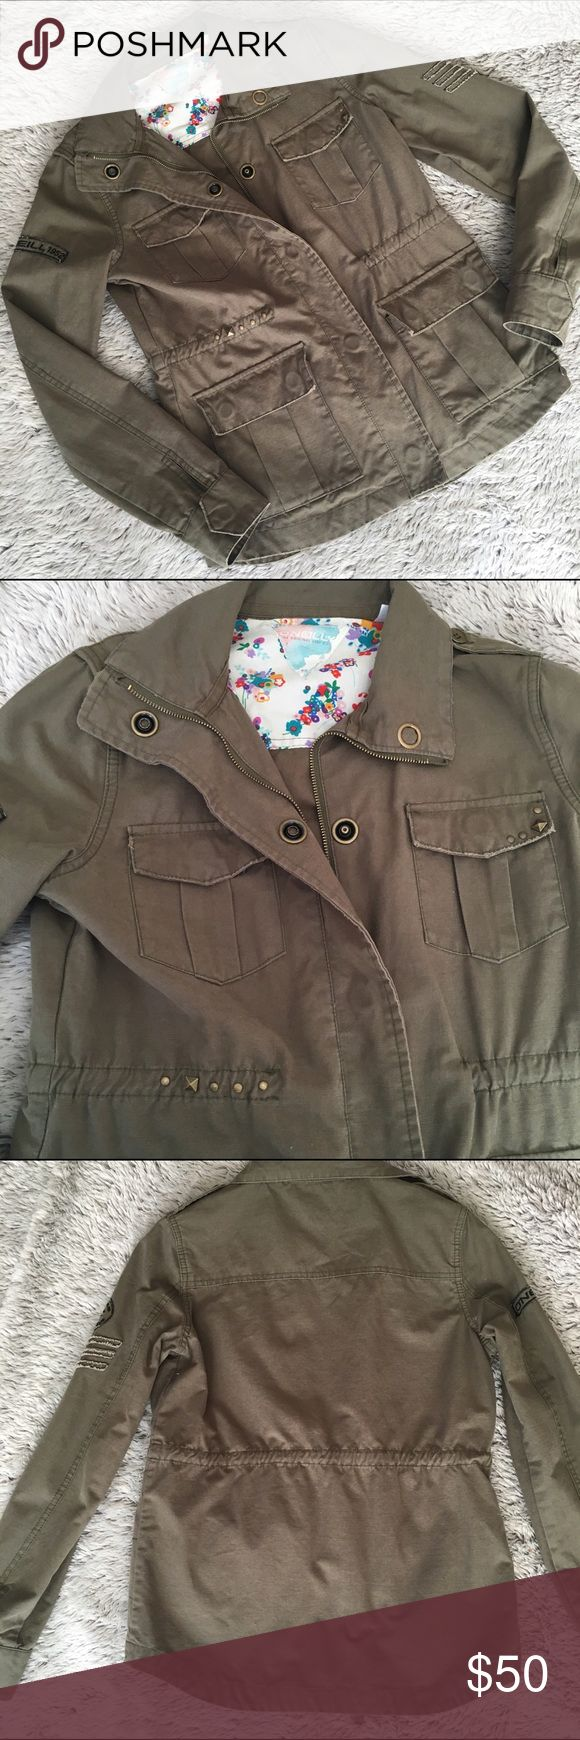 Army Green O'Neill Utility Jacket Worn once. Army green O'Neill's utility jacket. Has a zip and snap button closure.  4 snap button pockets and snaps buttons at the wrists.     Tiny studs on left breast pocket and right side waist line.  Interior drawstring at waist.  Hits at low hip. Like new condition!! O'Neill Jackets & Coats Utility Jackets